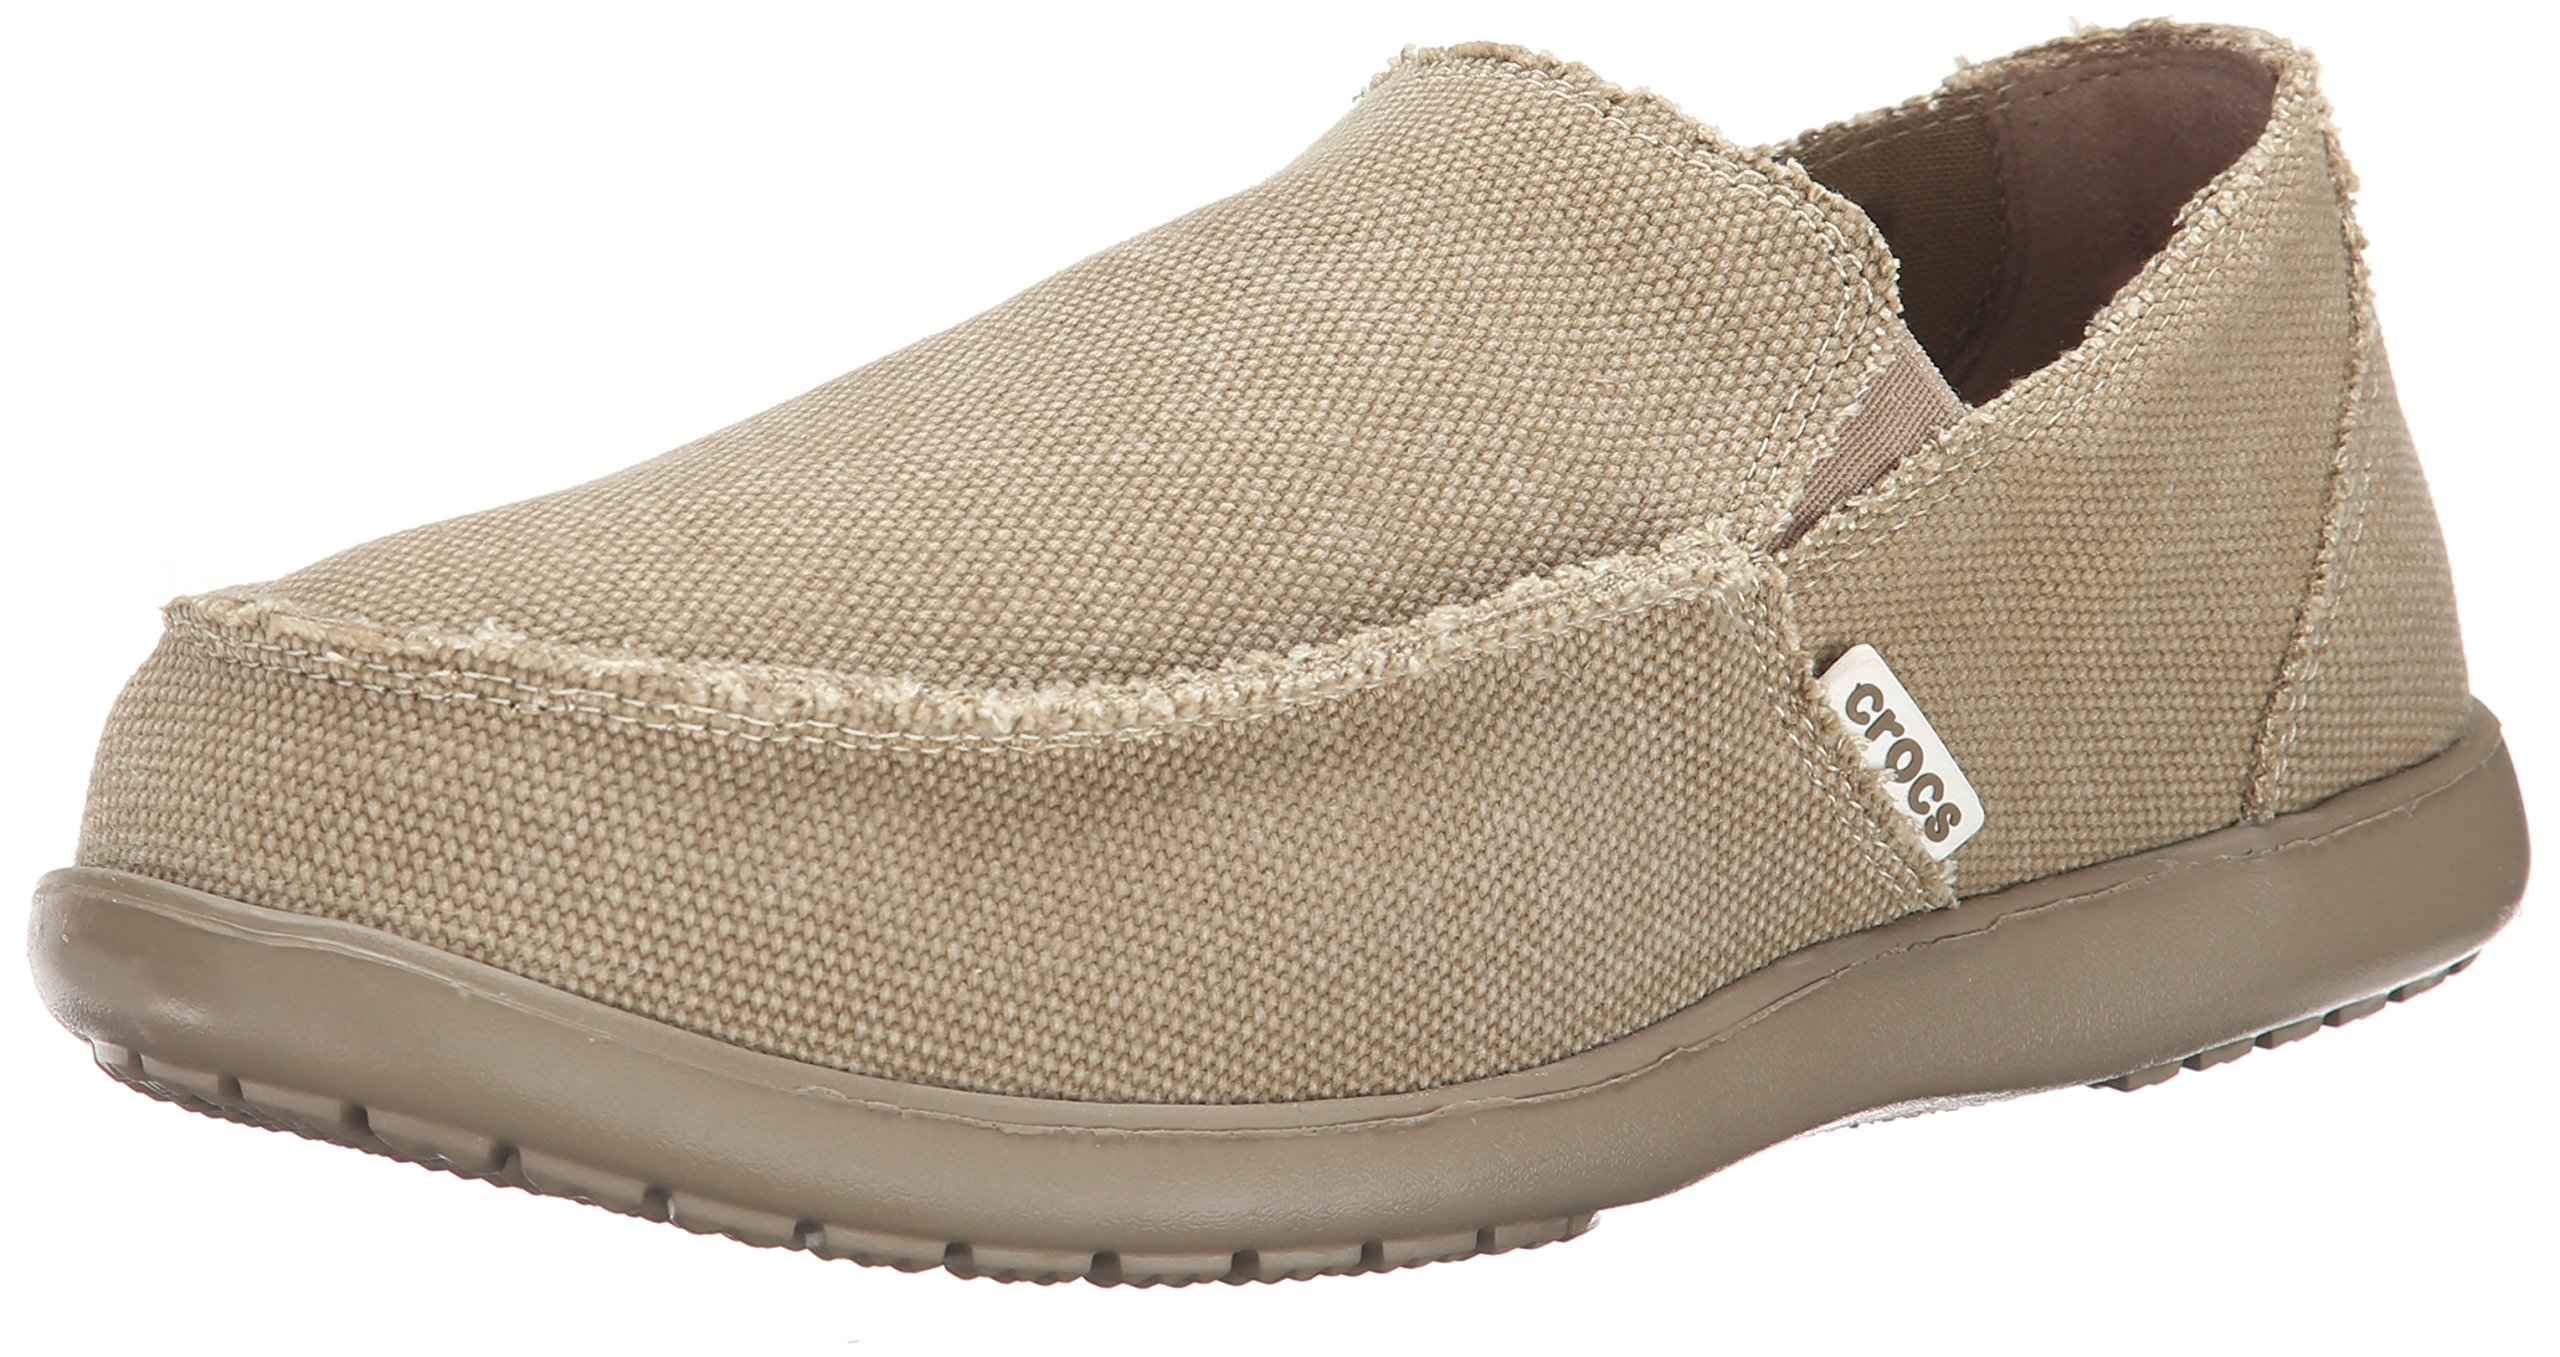 Crocs Men's Santa Cruz Loafer, Khaki/Khaki, 13 D(M) US by Crocs